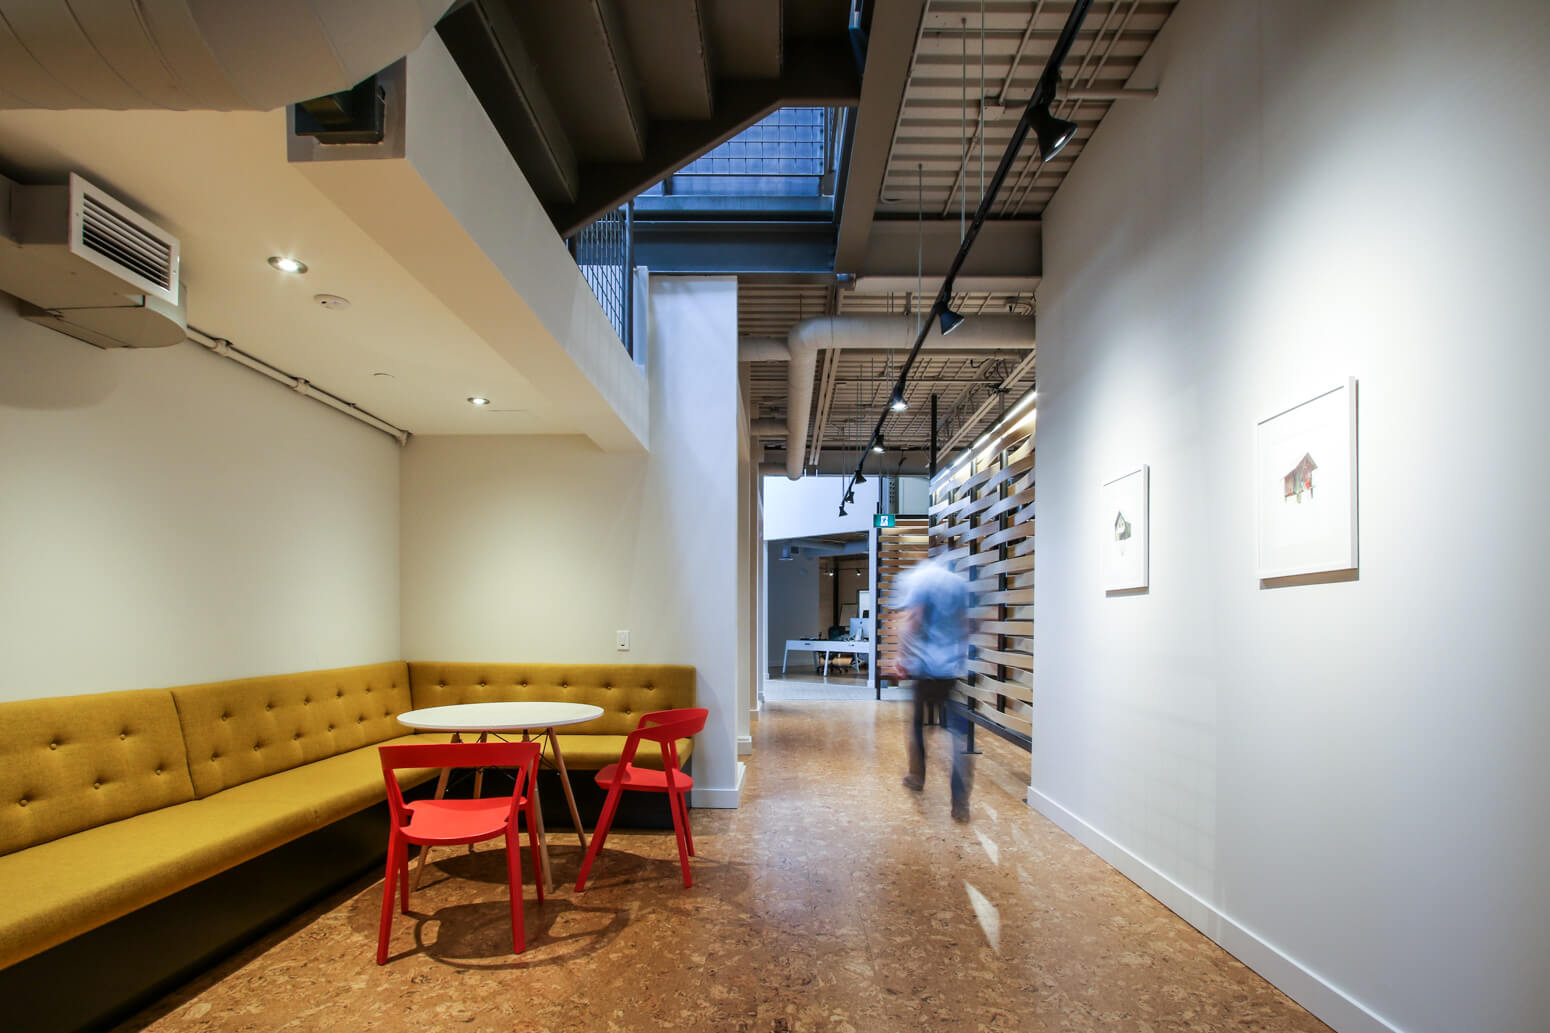 Shopify Waterloo Office Killer Spaces-28